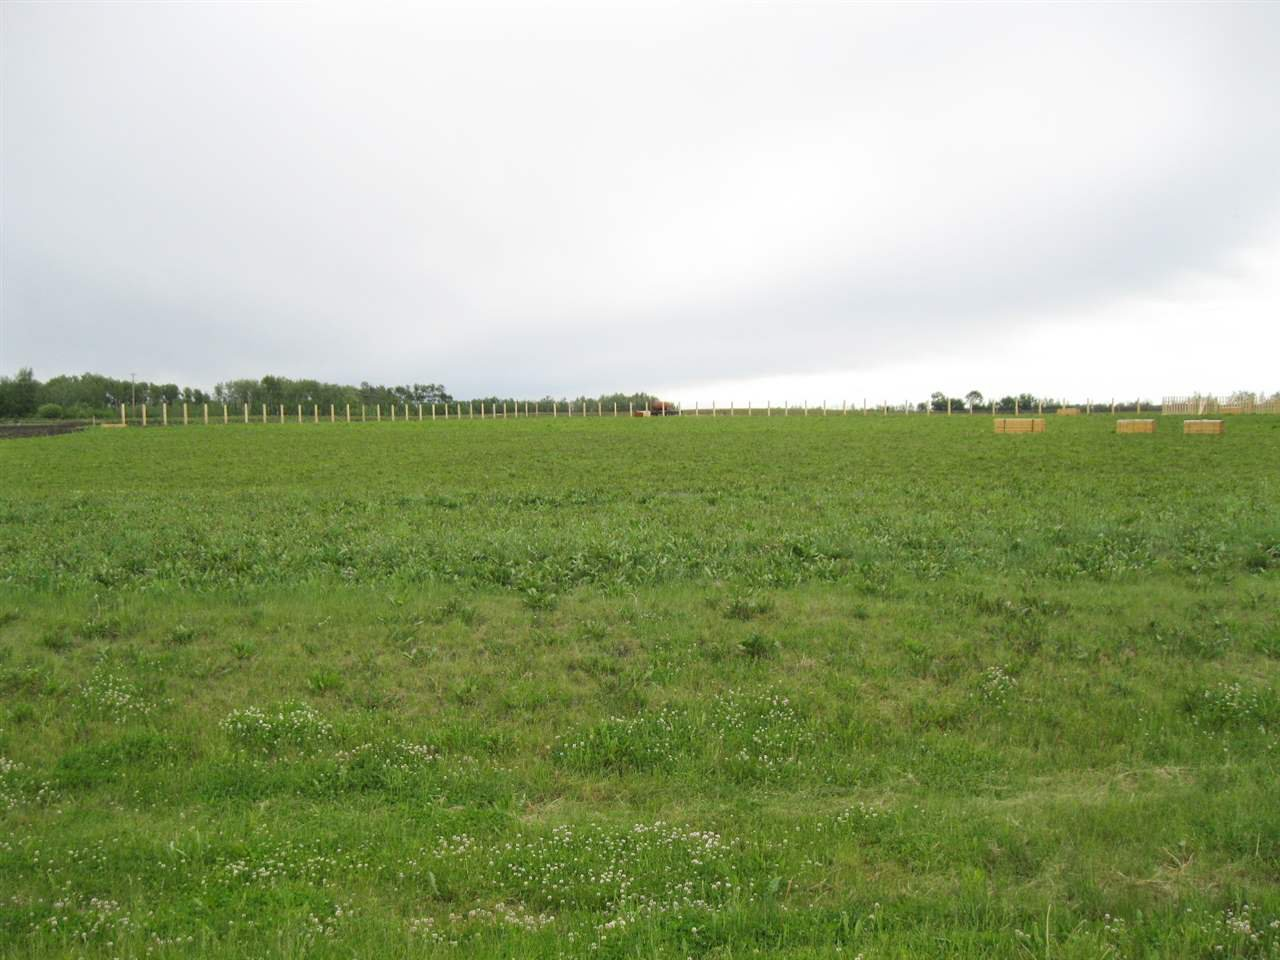 Main Photo: 6 52329 RGE RD 13: Rural Parkland County Rural Land/Vacant Lot for sale : MLS®# E4192970